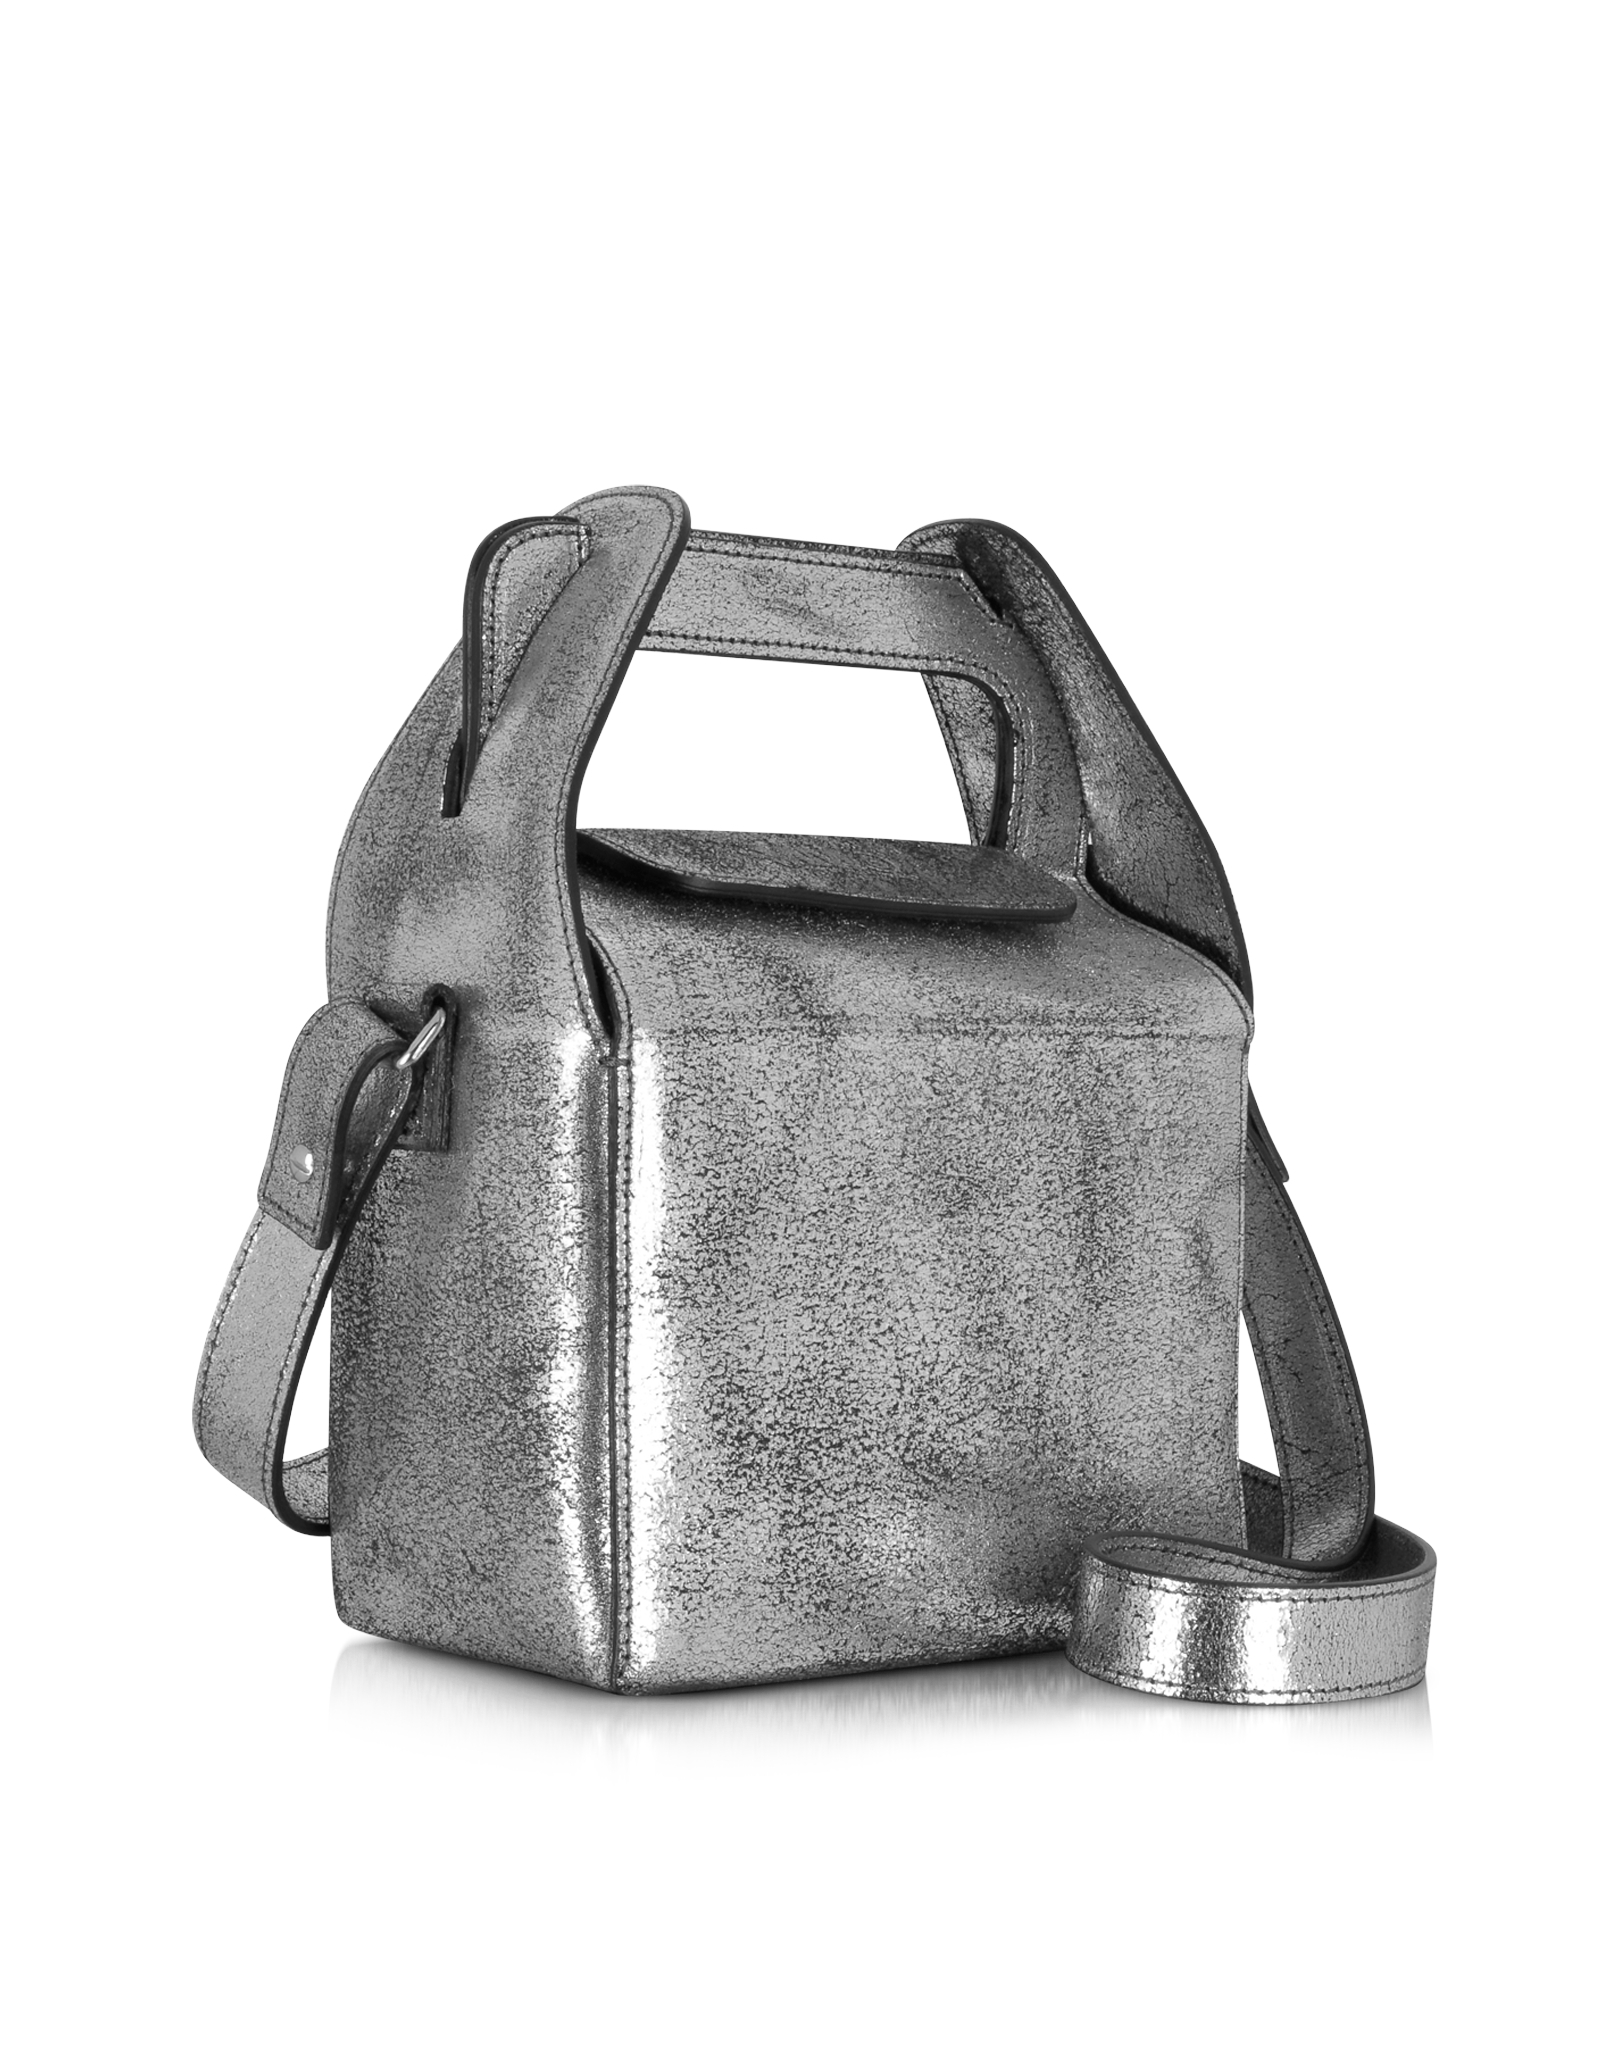 Womens Metallic-Coated Canvas Triangle Bag Maison Martin Margiela 1G52P34xv